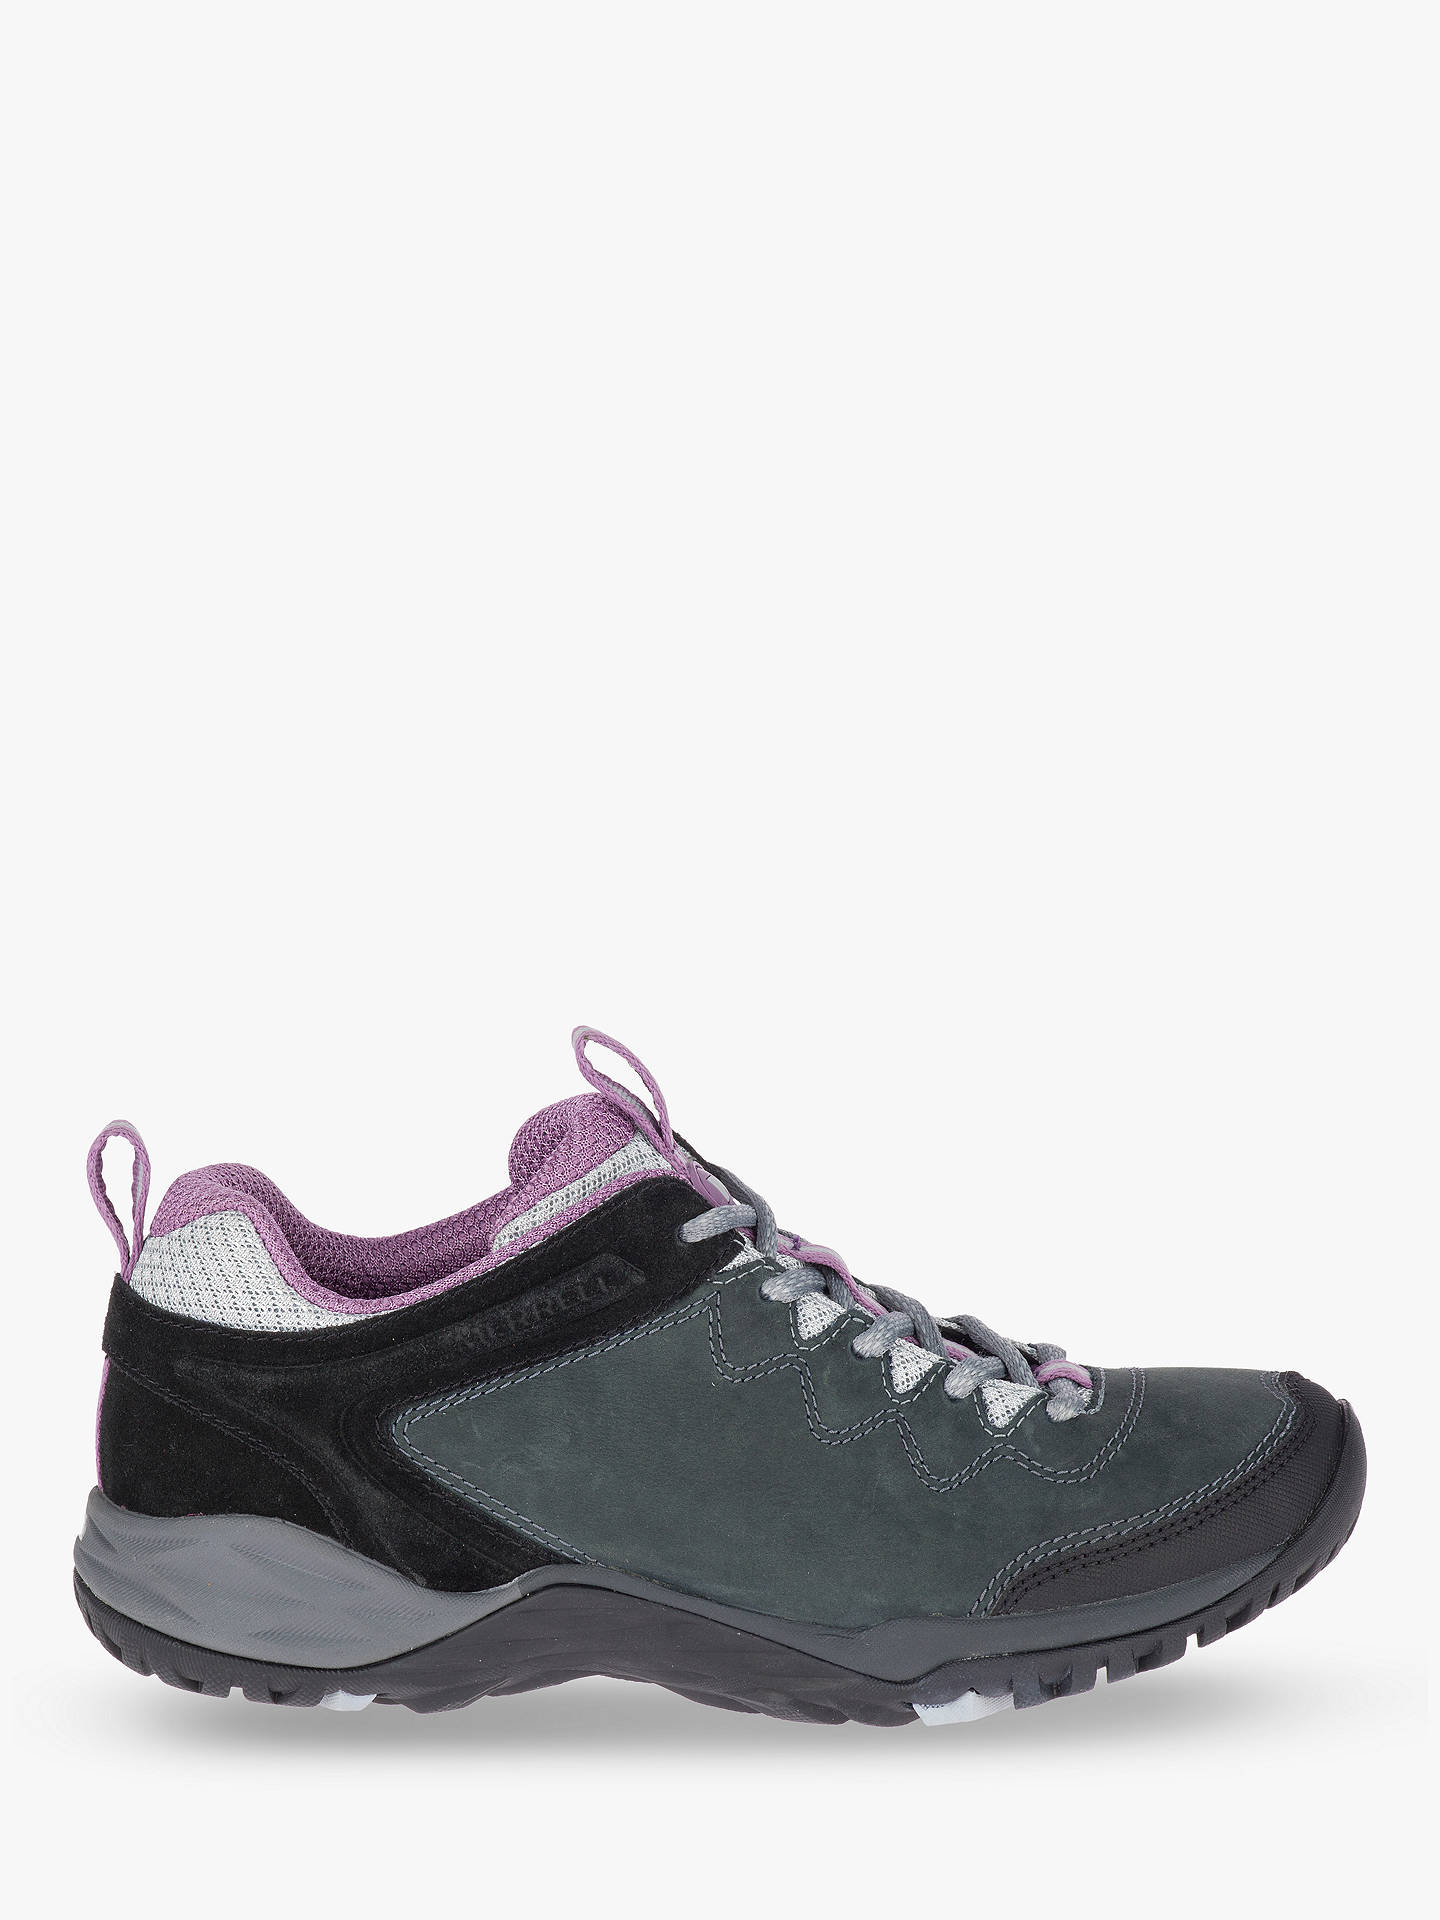 presenting newest limpid in sight Merrell Siren Traveller Q2 Women's Walking Shoes, Grey Charcoal